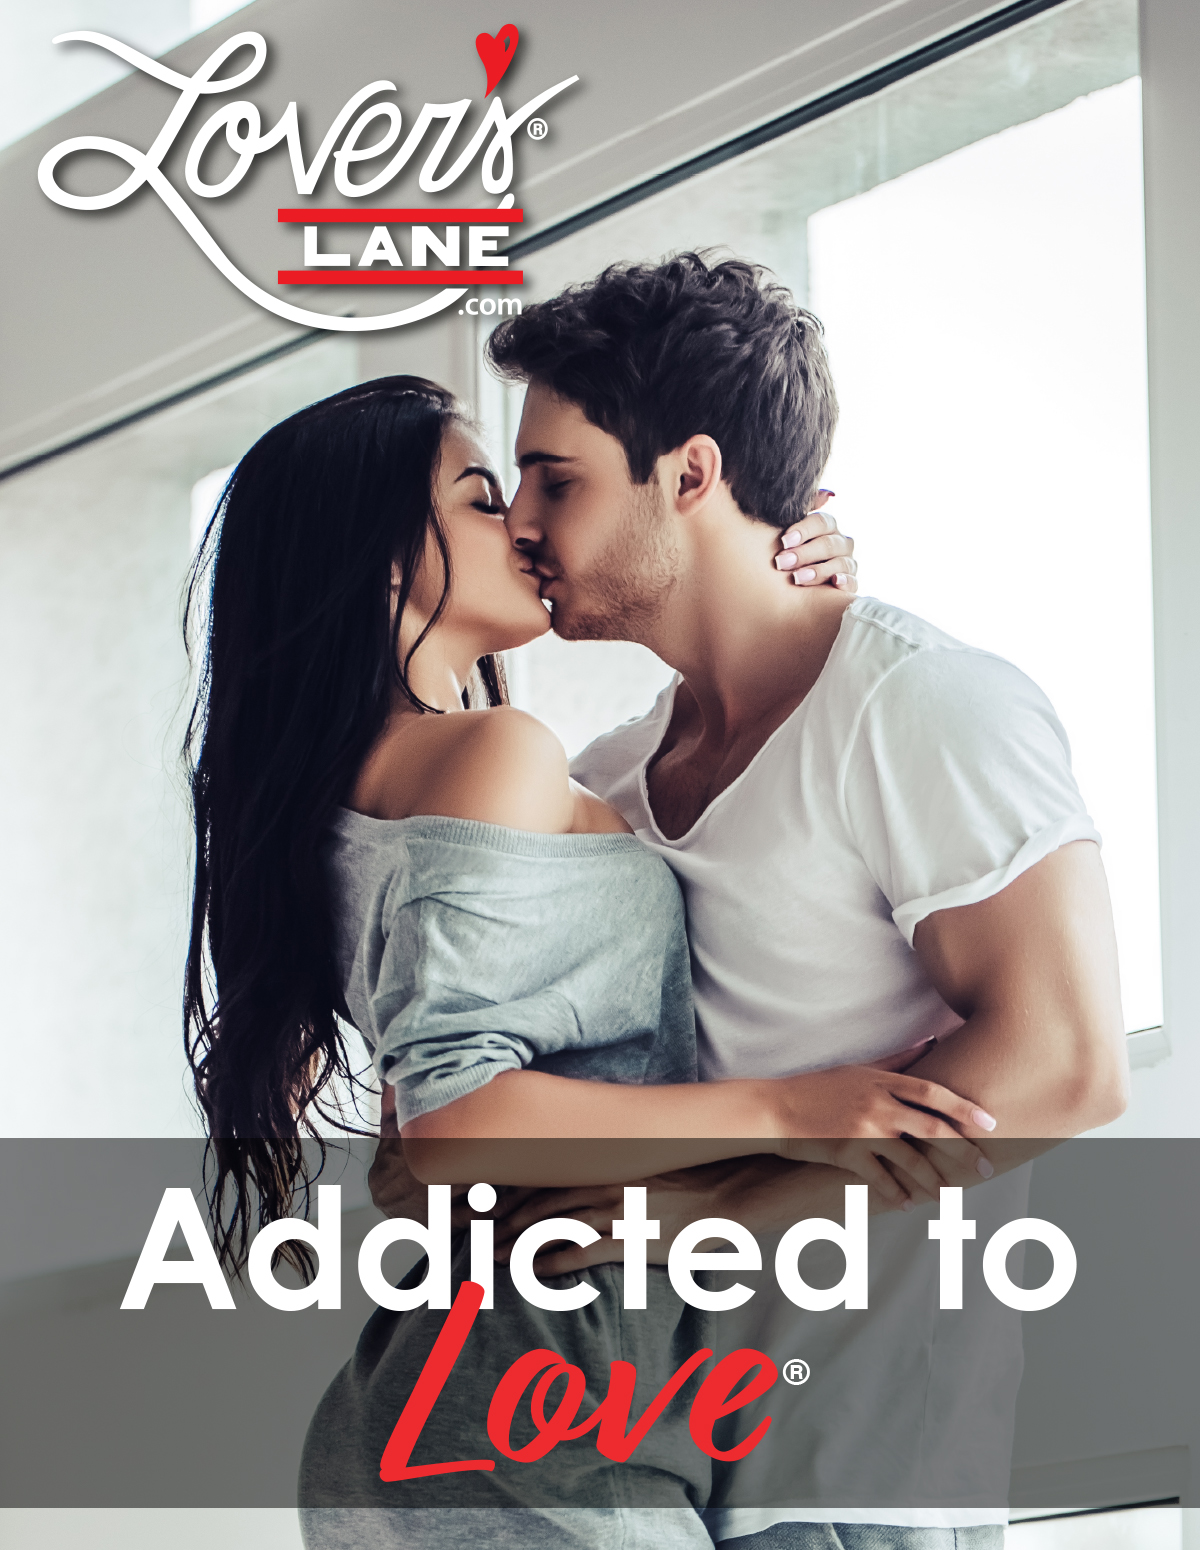 Addicted To Love - LoversLane.com